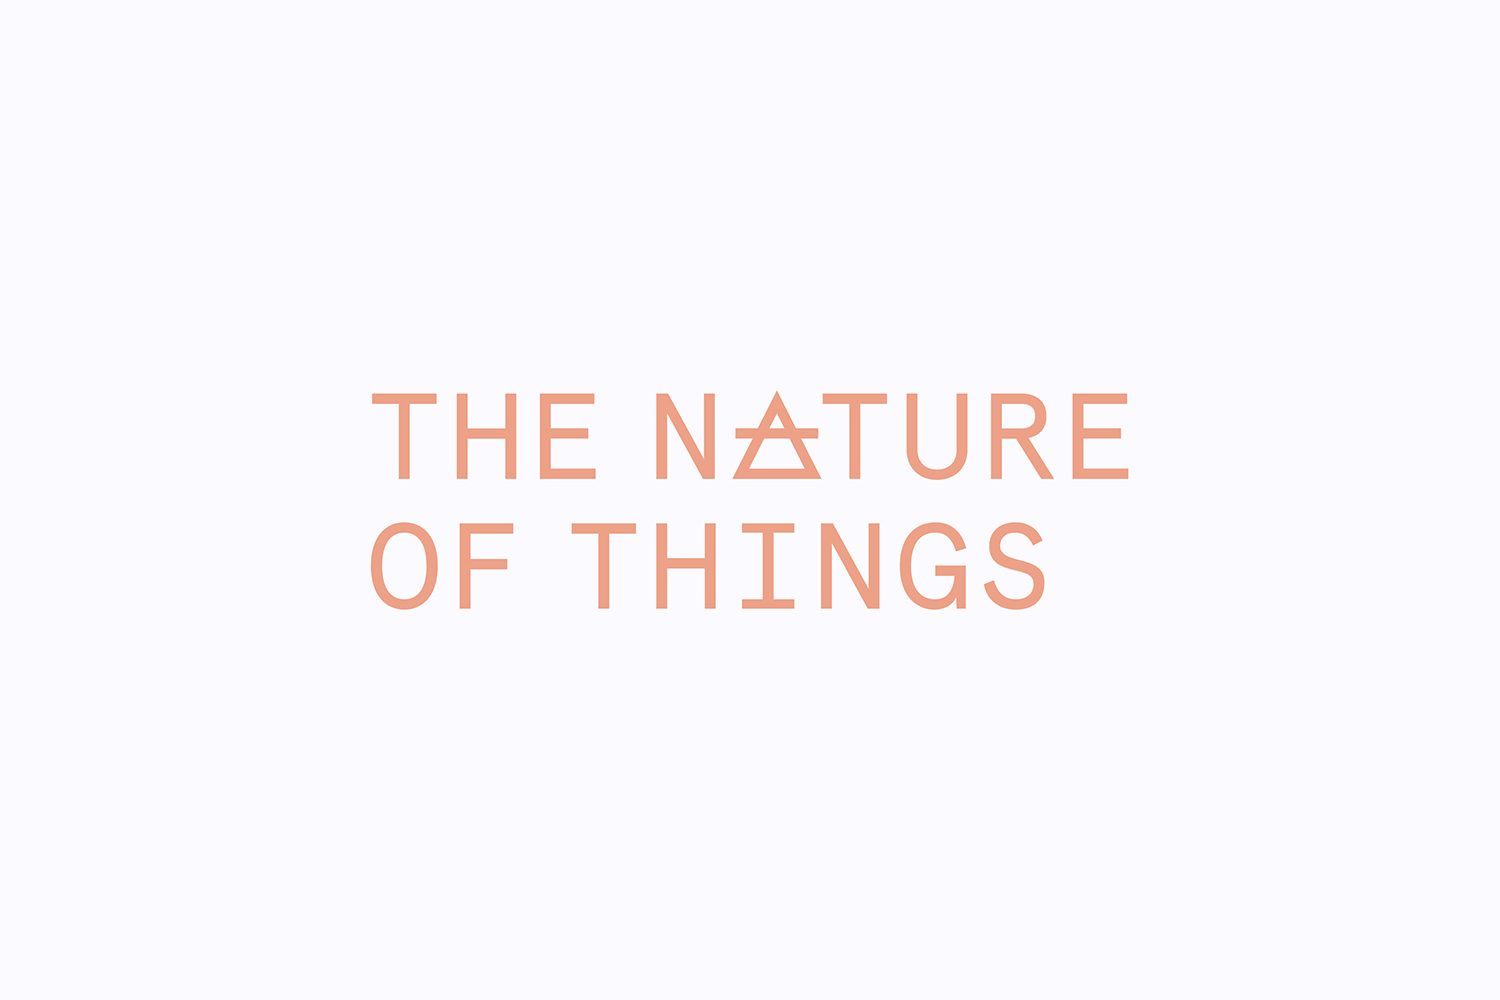 Cover image: The Nature of Things